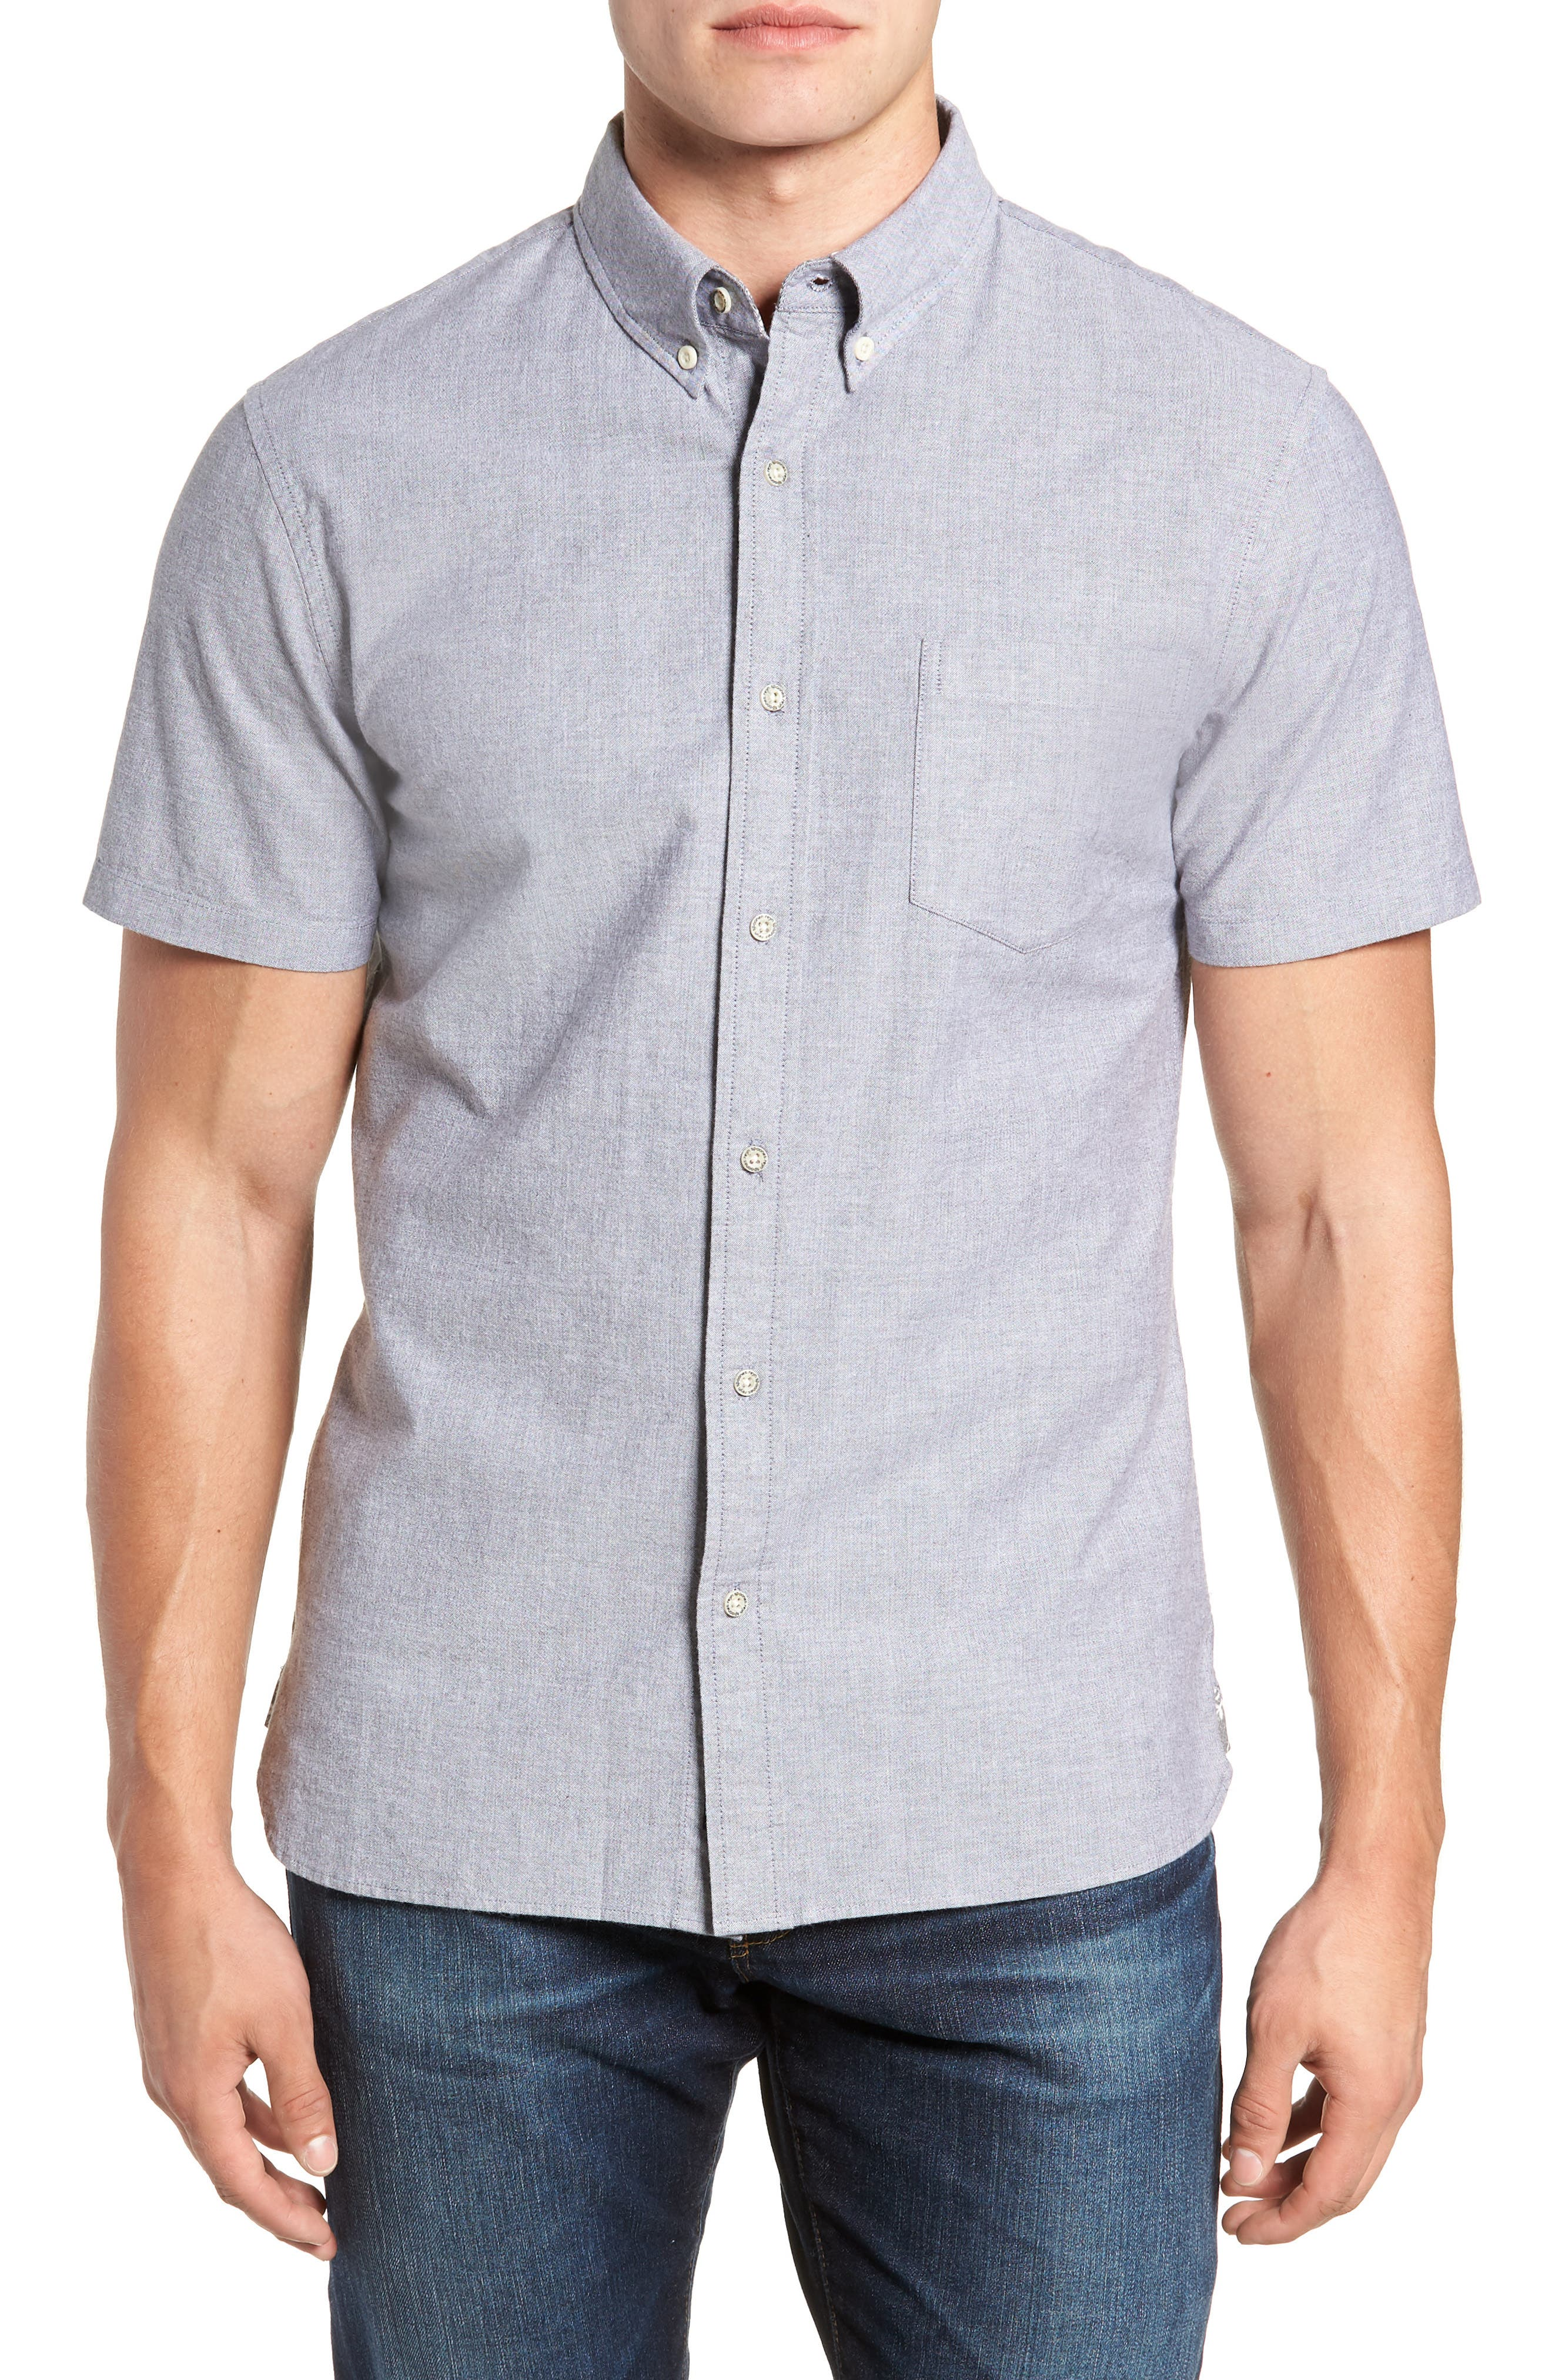 Regular Fit Solid Stretch Oxford Sport Shirt,                             Main thumbnail 1, color,                             GREY